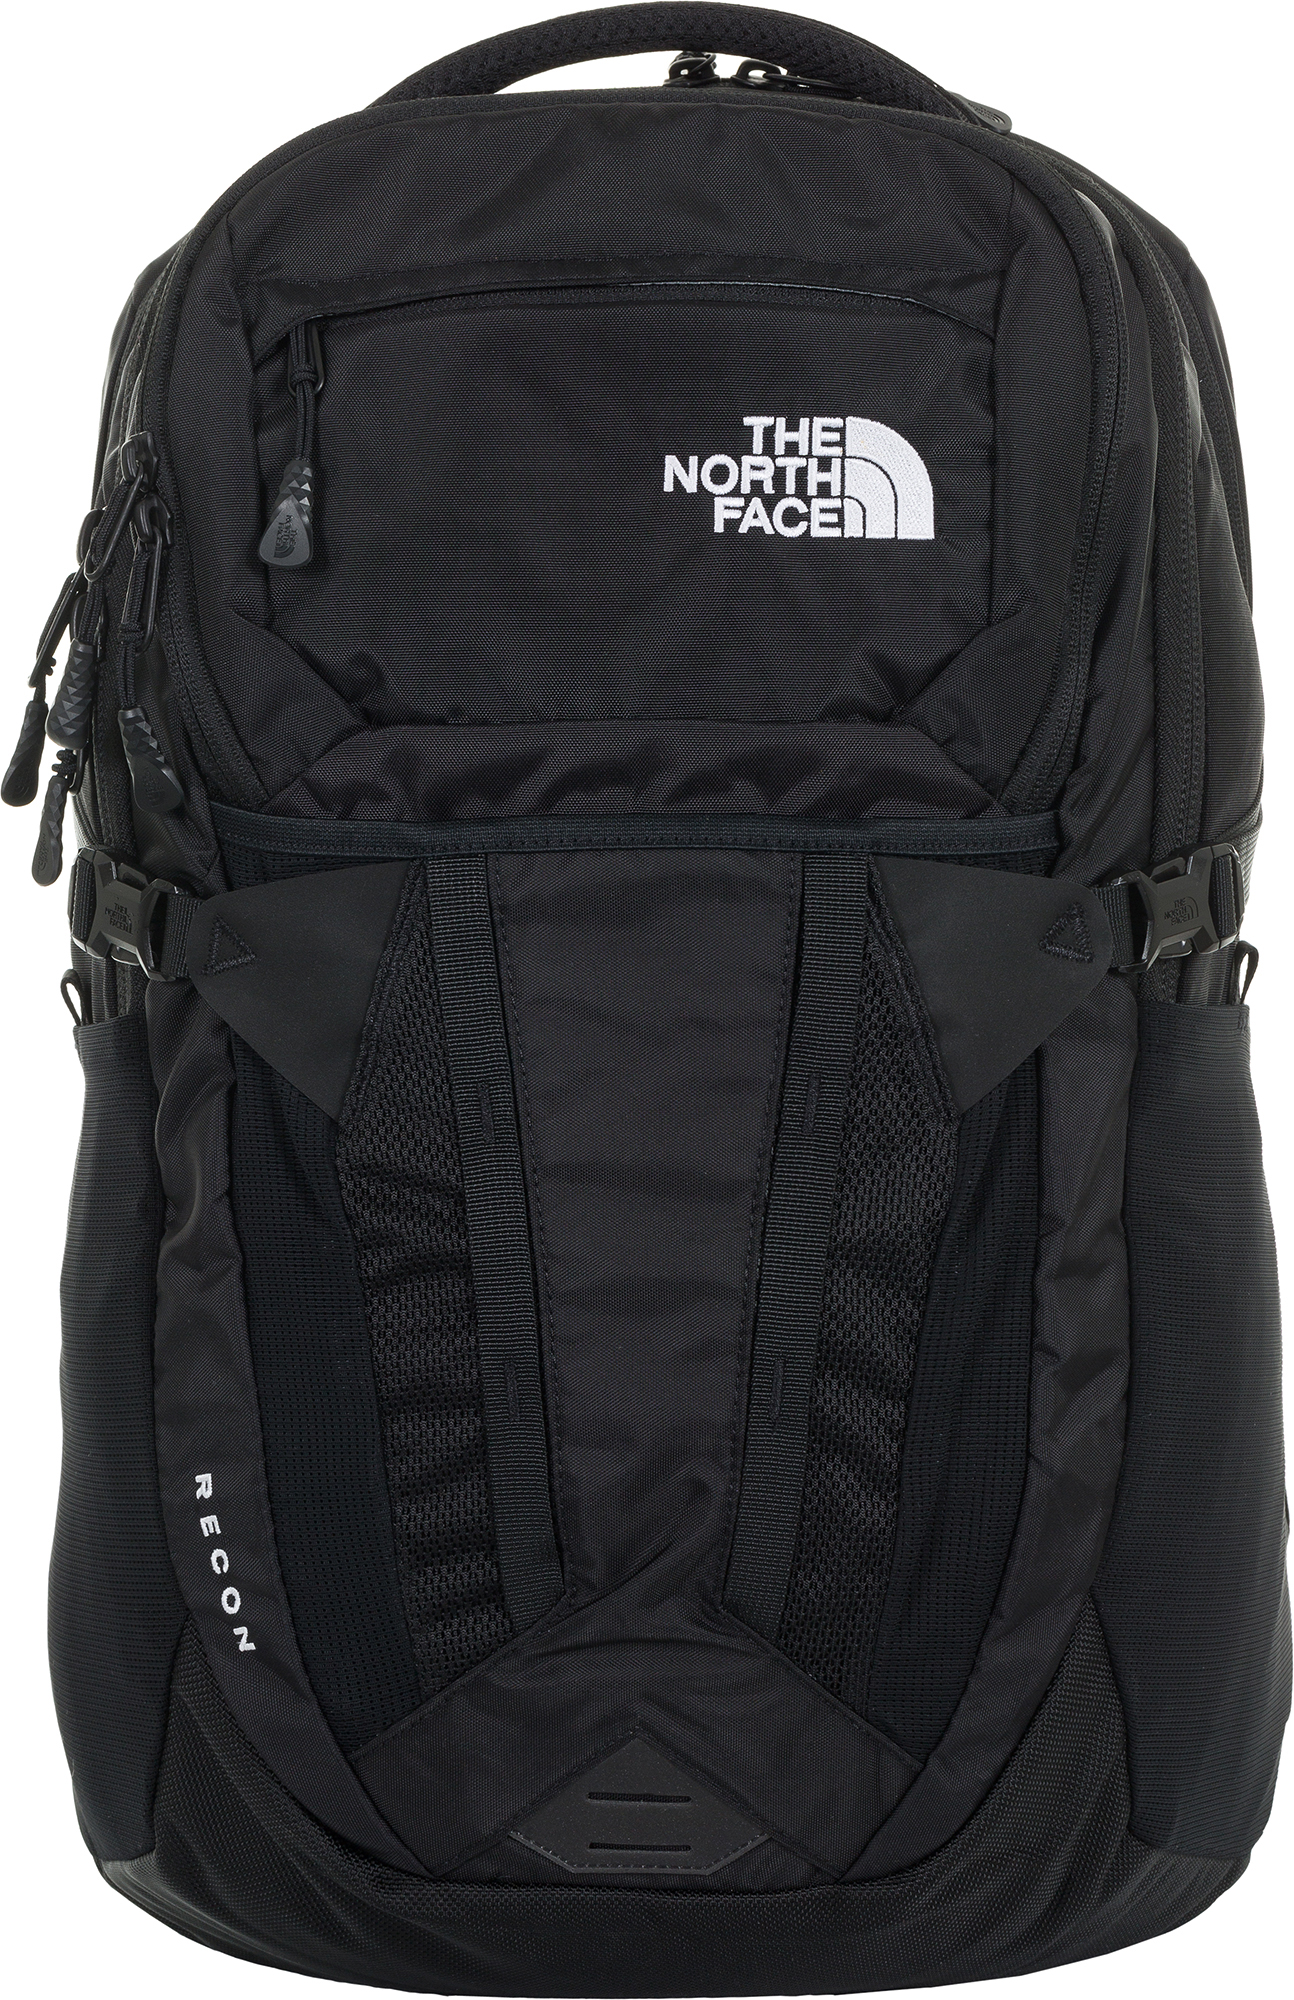 The North Face Рюкзак The North Face Recon рюкзак the north face the north face lineage ruck синий 23л